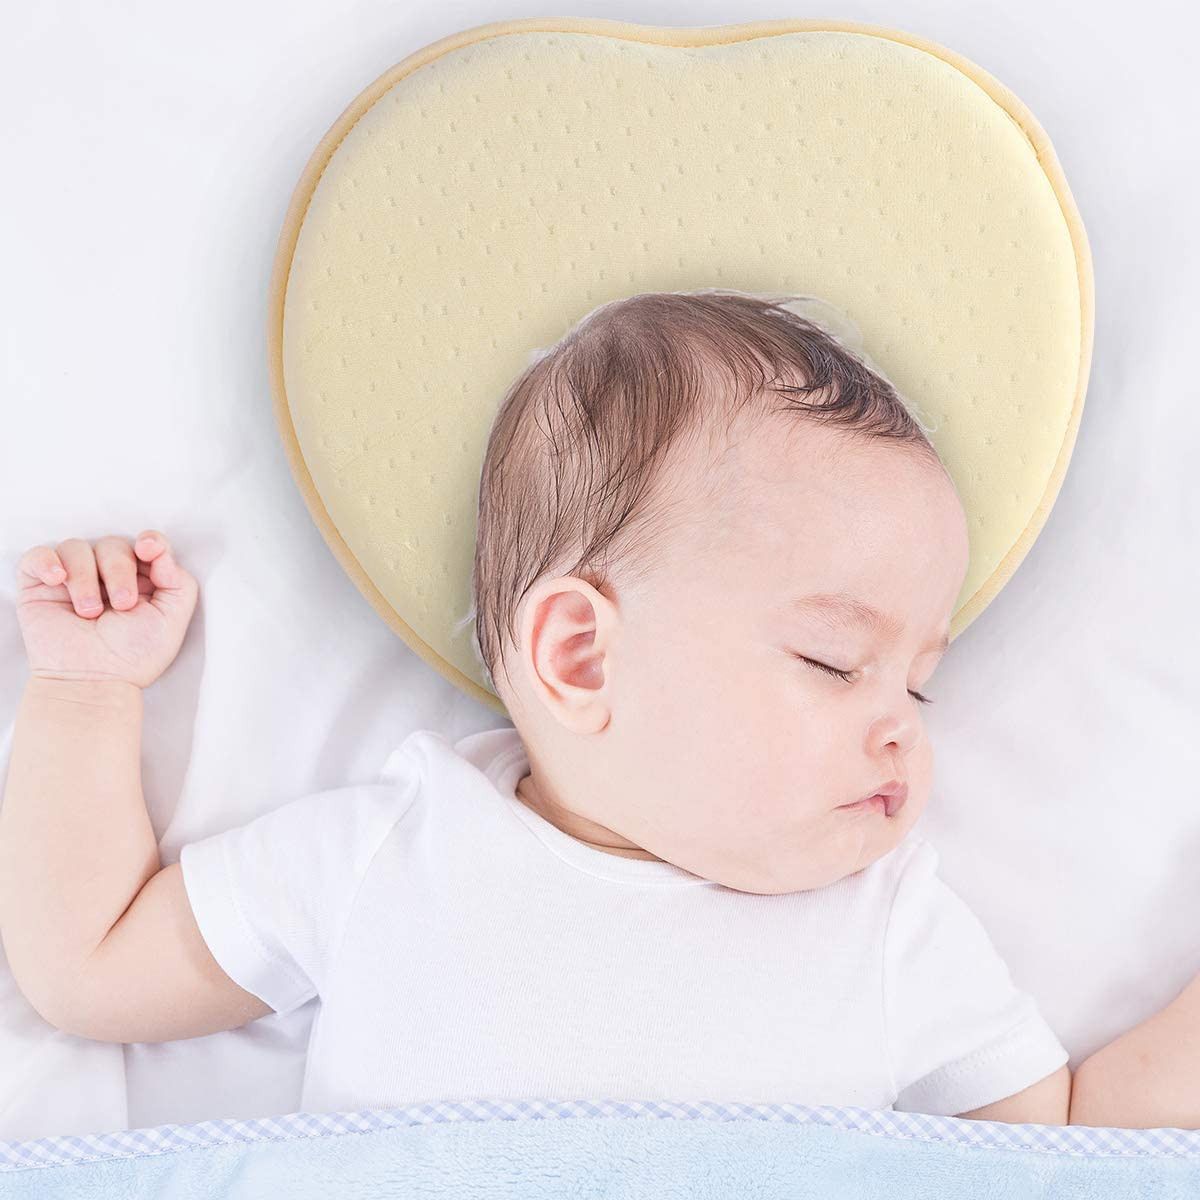 DaMohony Baby Pillow for Newborn Baby Head Shaping Pillow Soft Memory Foam Pillow with Neck Support for 0-12 Months